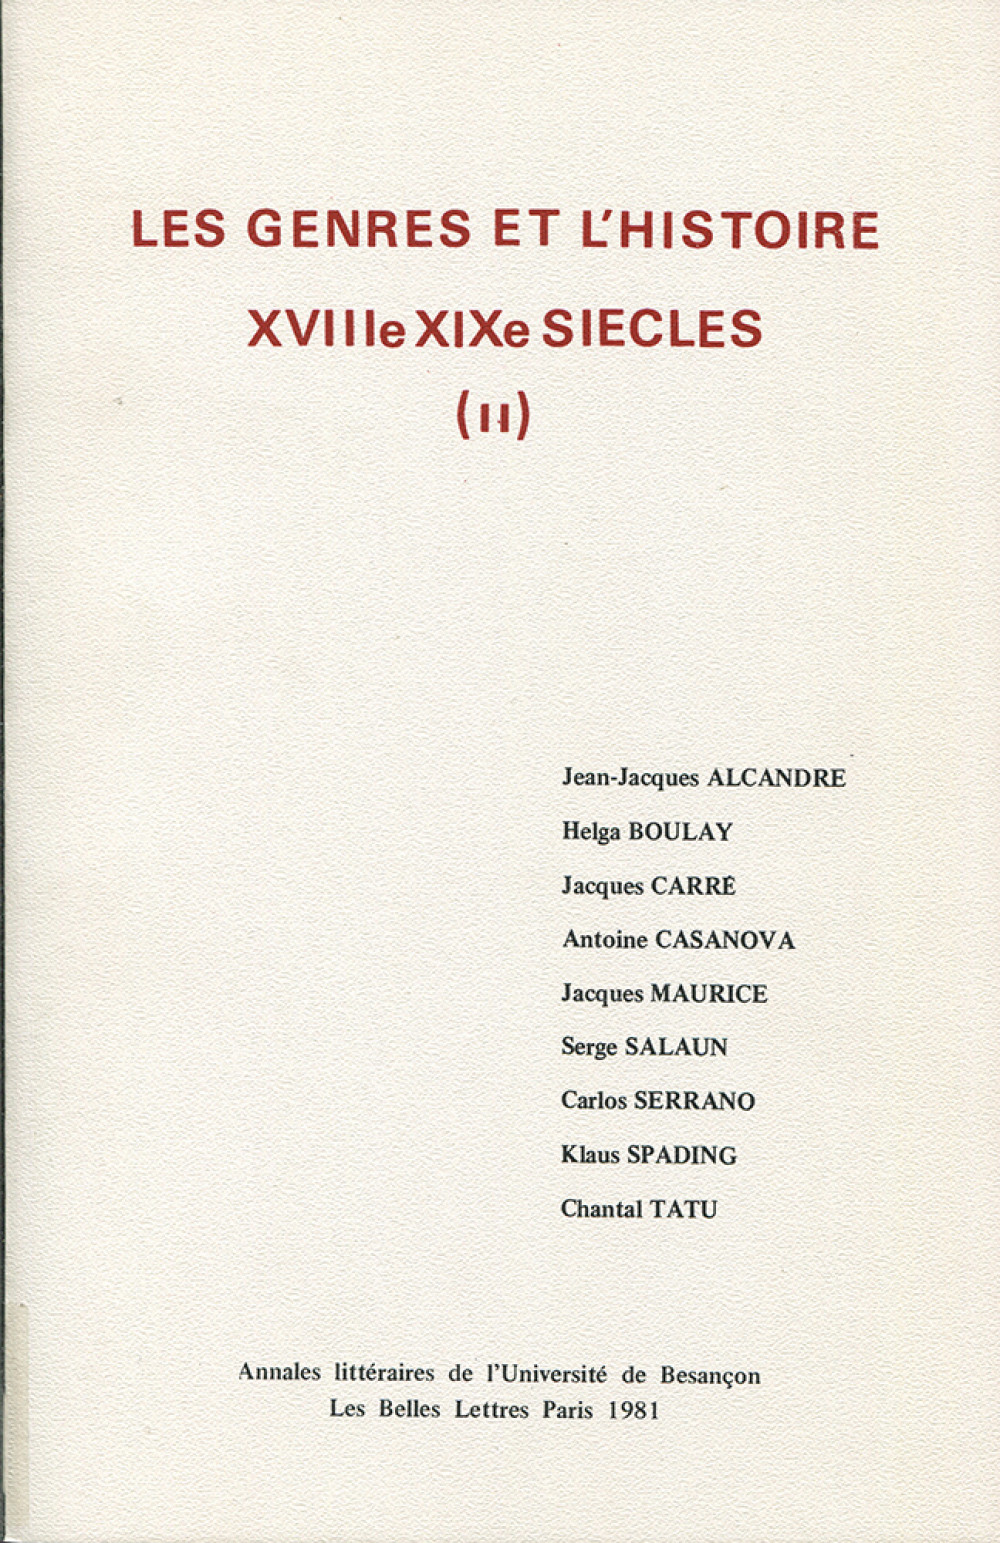 "Les genres et l'histoire <span style=""font-variant: small-caps"">XVIII</span><sup>e</sup>-<span style=""font-variant: small-caps"">XIX</span><sup>e</sup> siècles II"